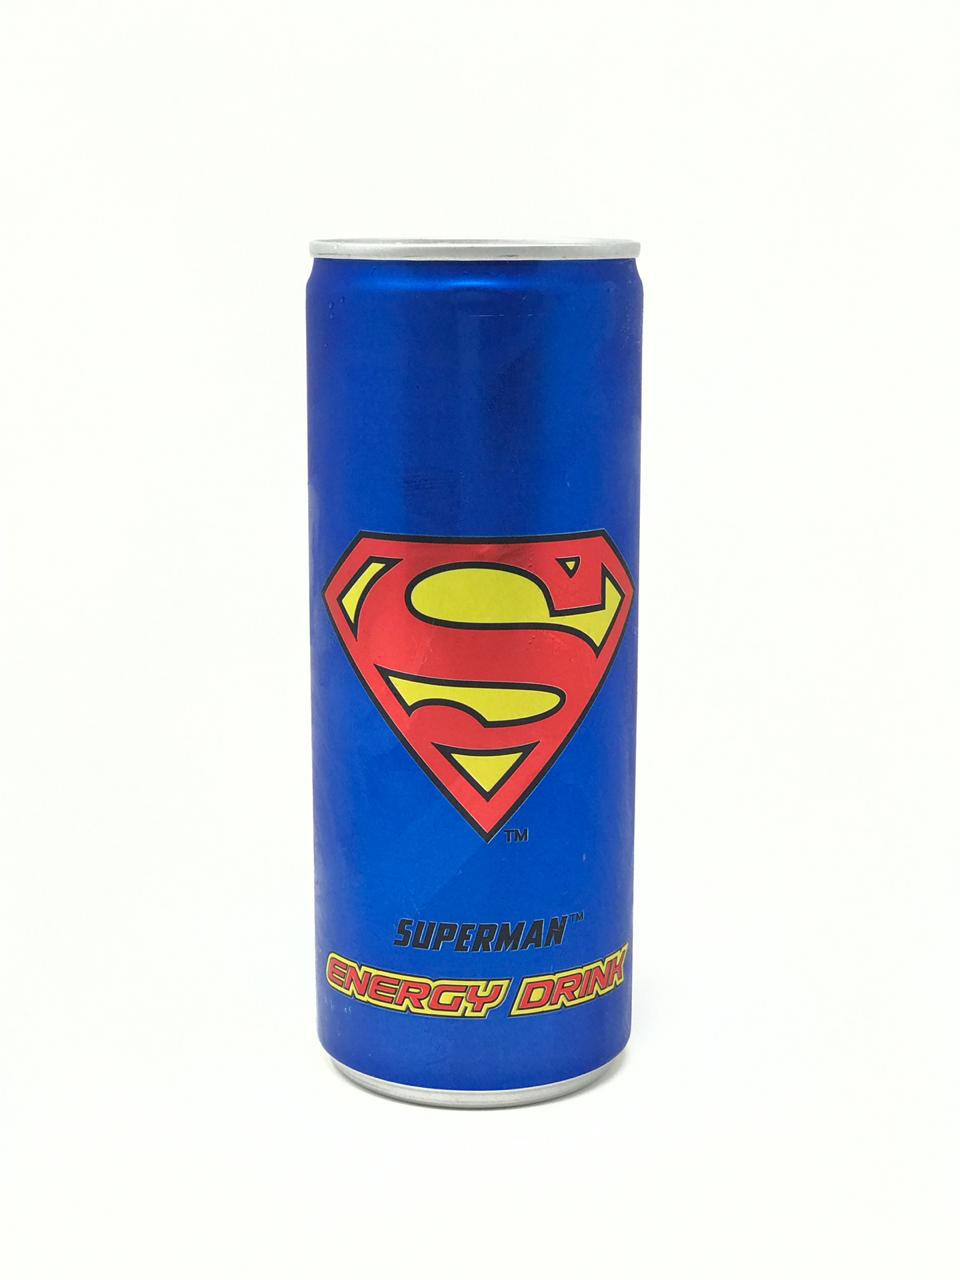 Superman Energy Drink: #FirstImpressions